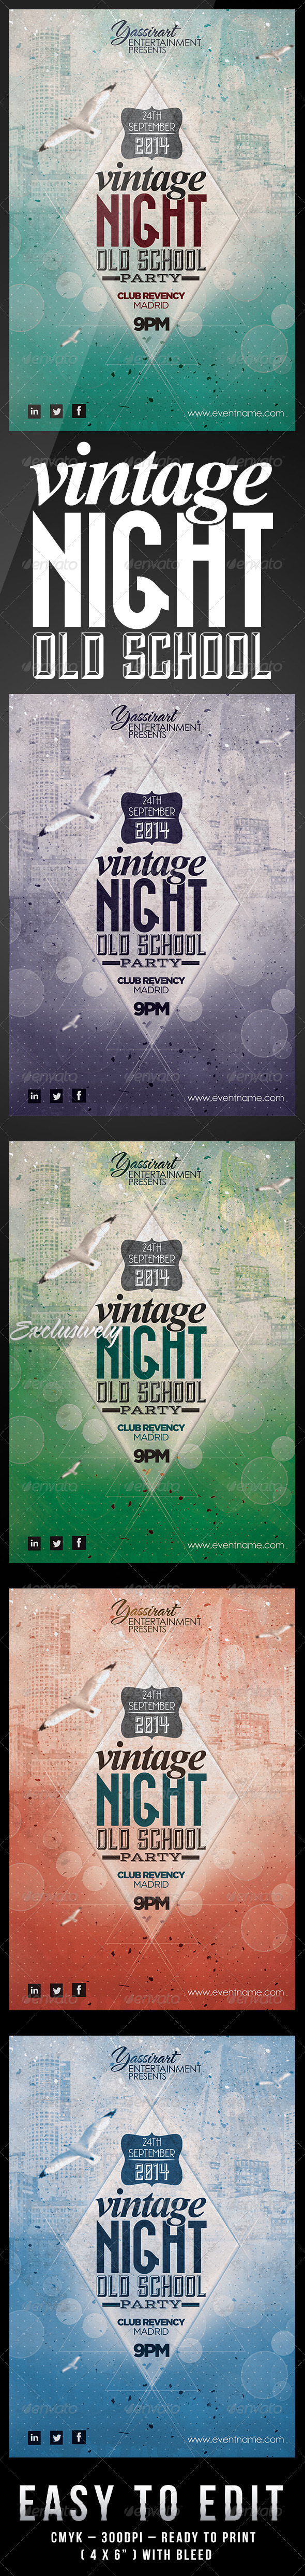 GraphicRiver Vintage Night Old School Party Flyer Template 6647575